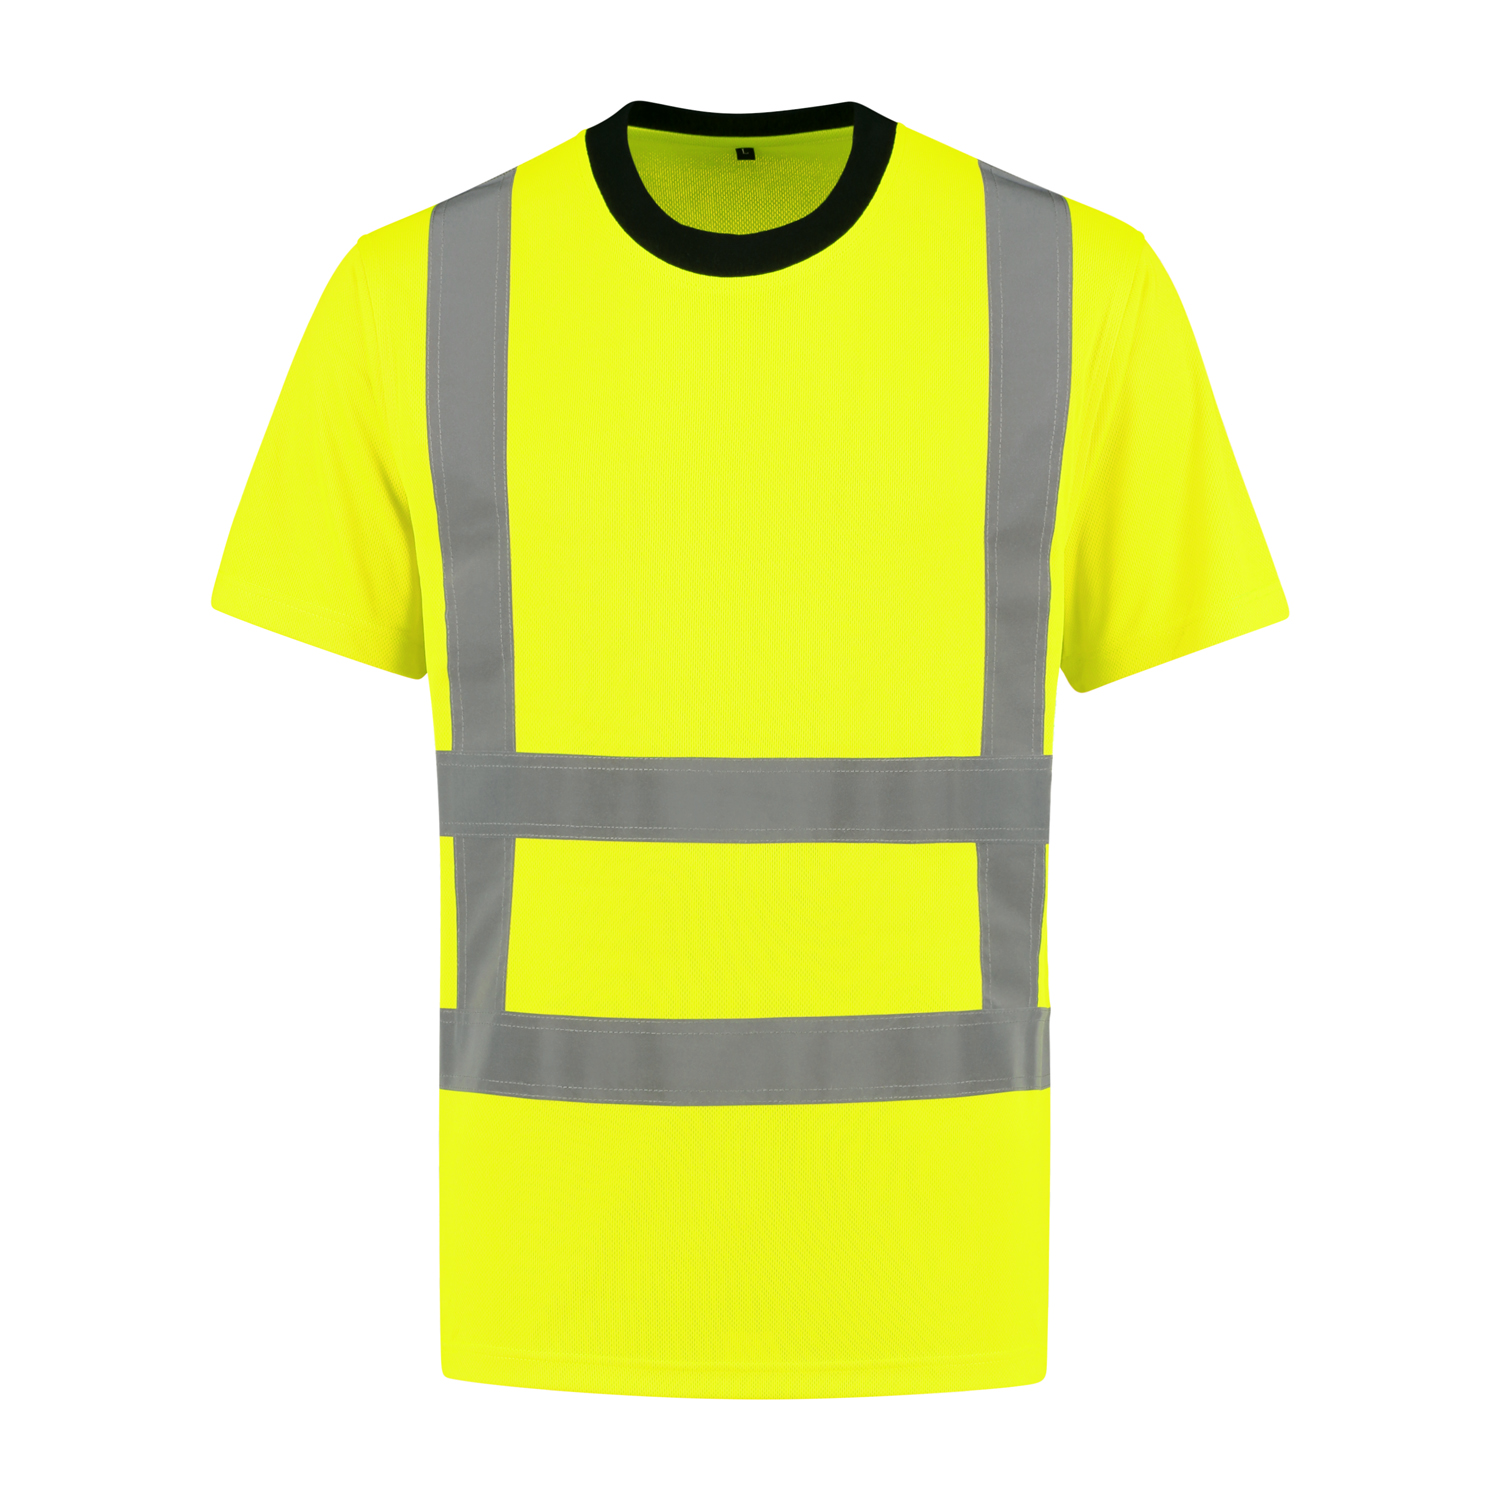 RWS High visibility T-shirt | 100% polyester